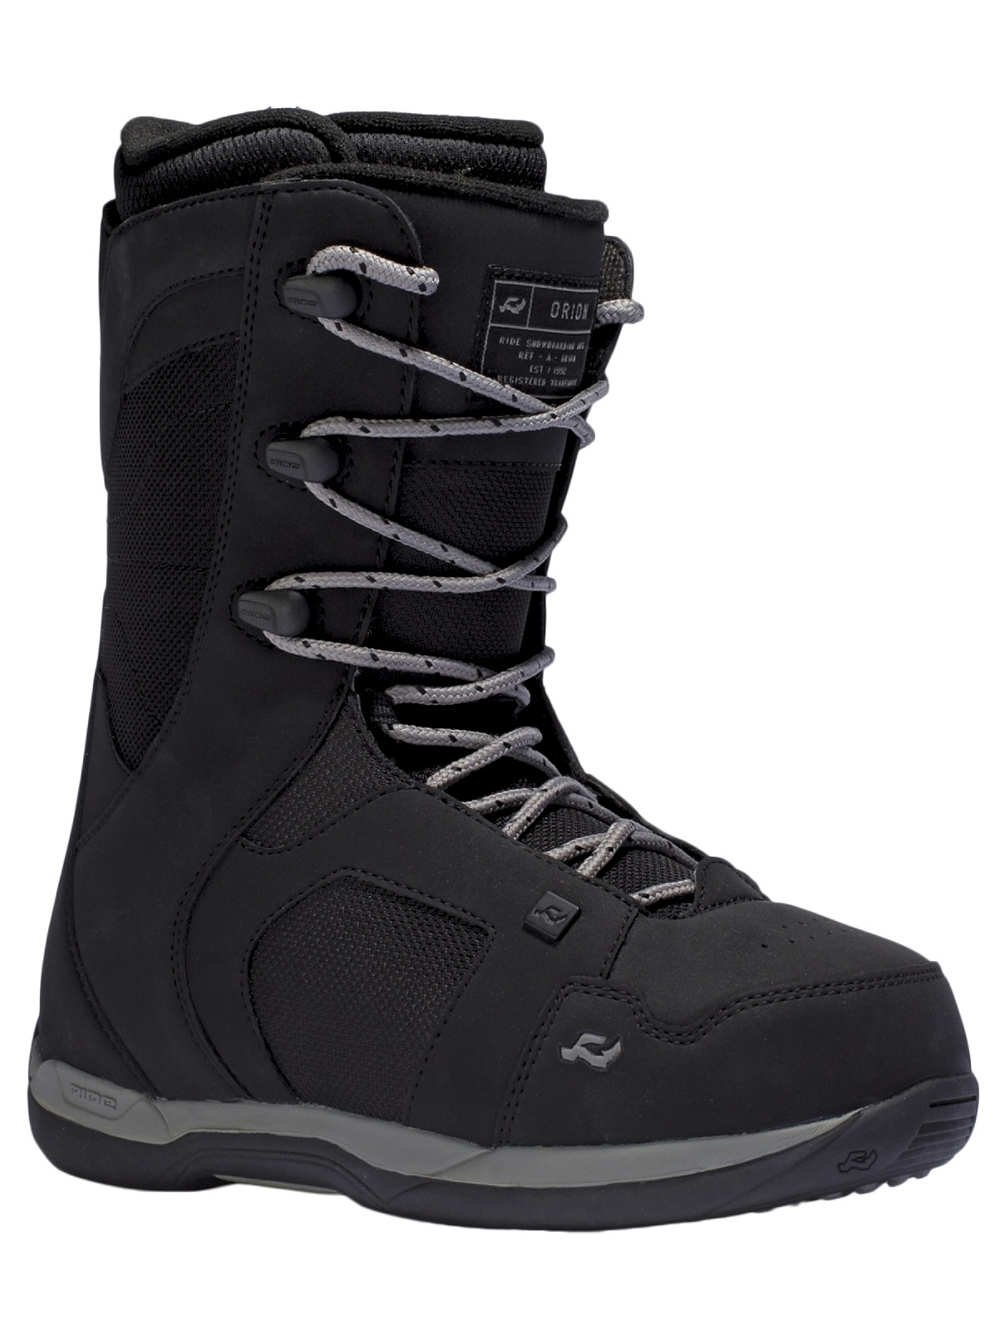 Ride Orion Snowboard Boot Men's Black 6 by Ride Snowboards